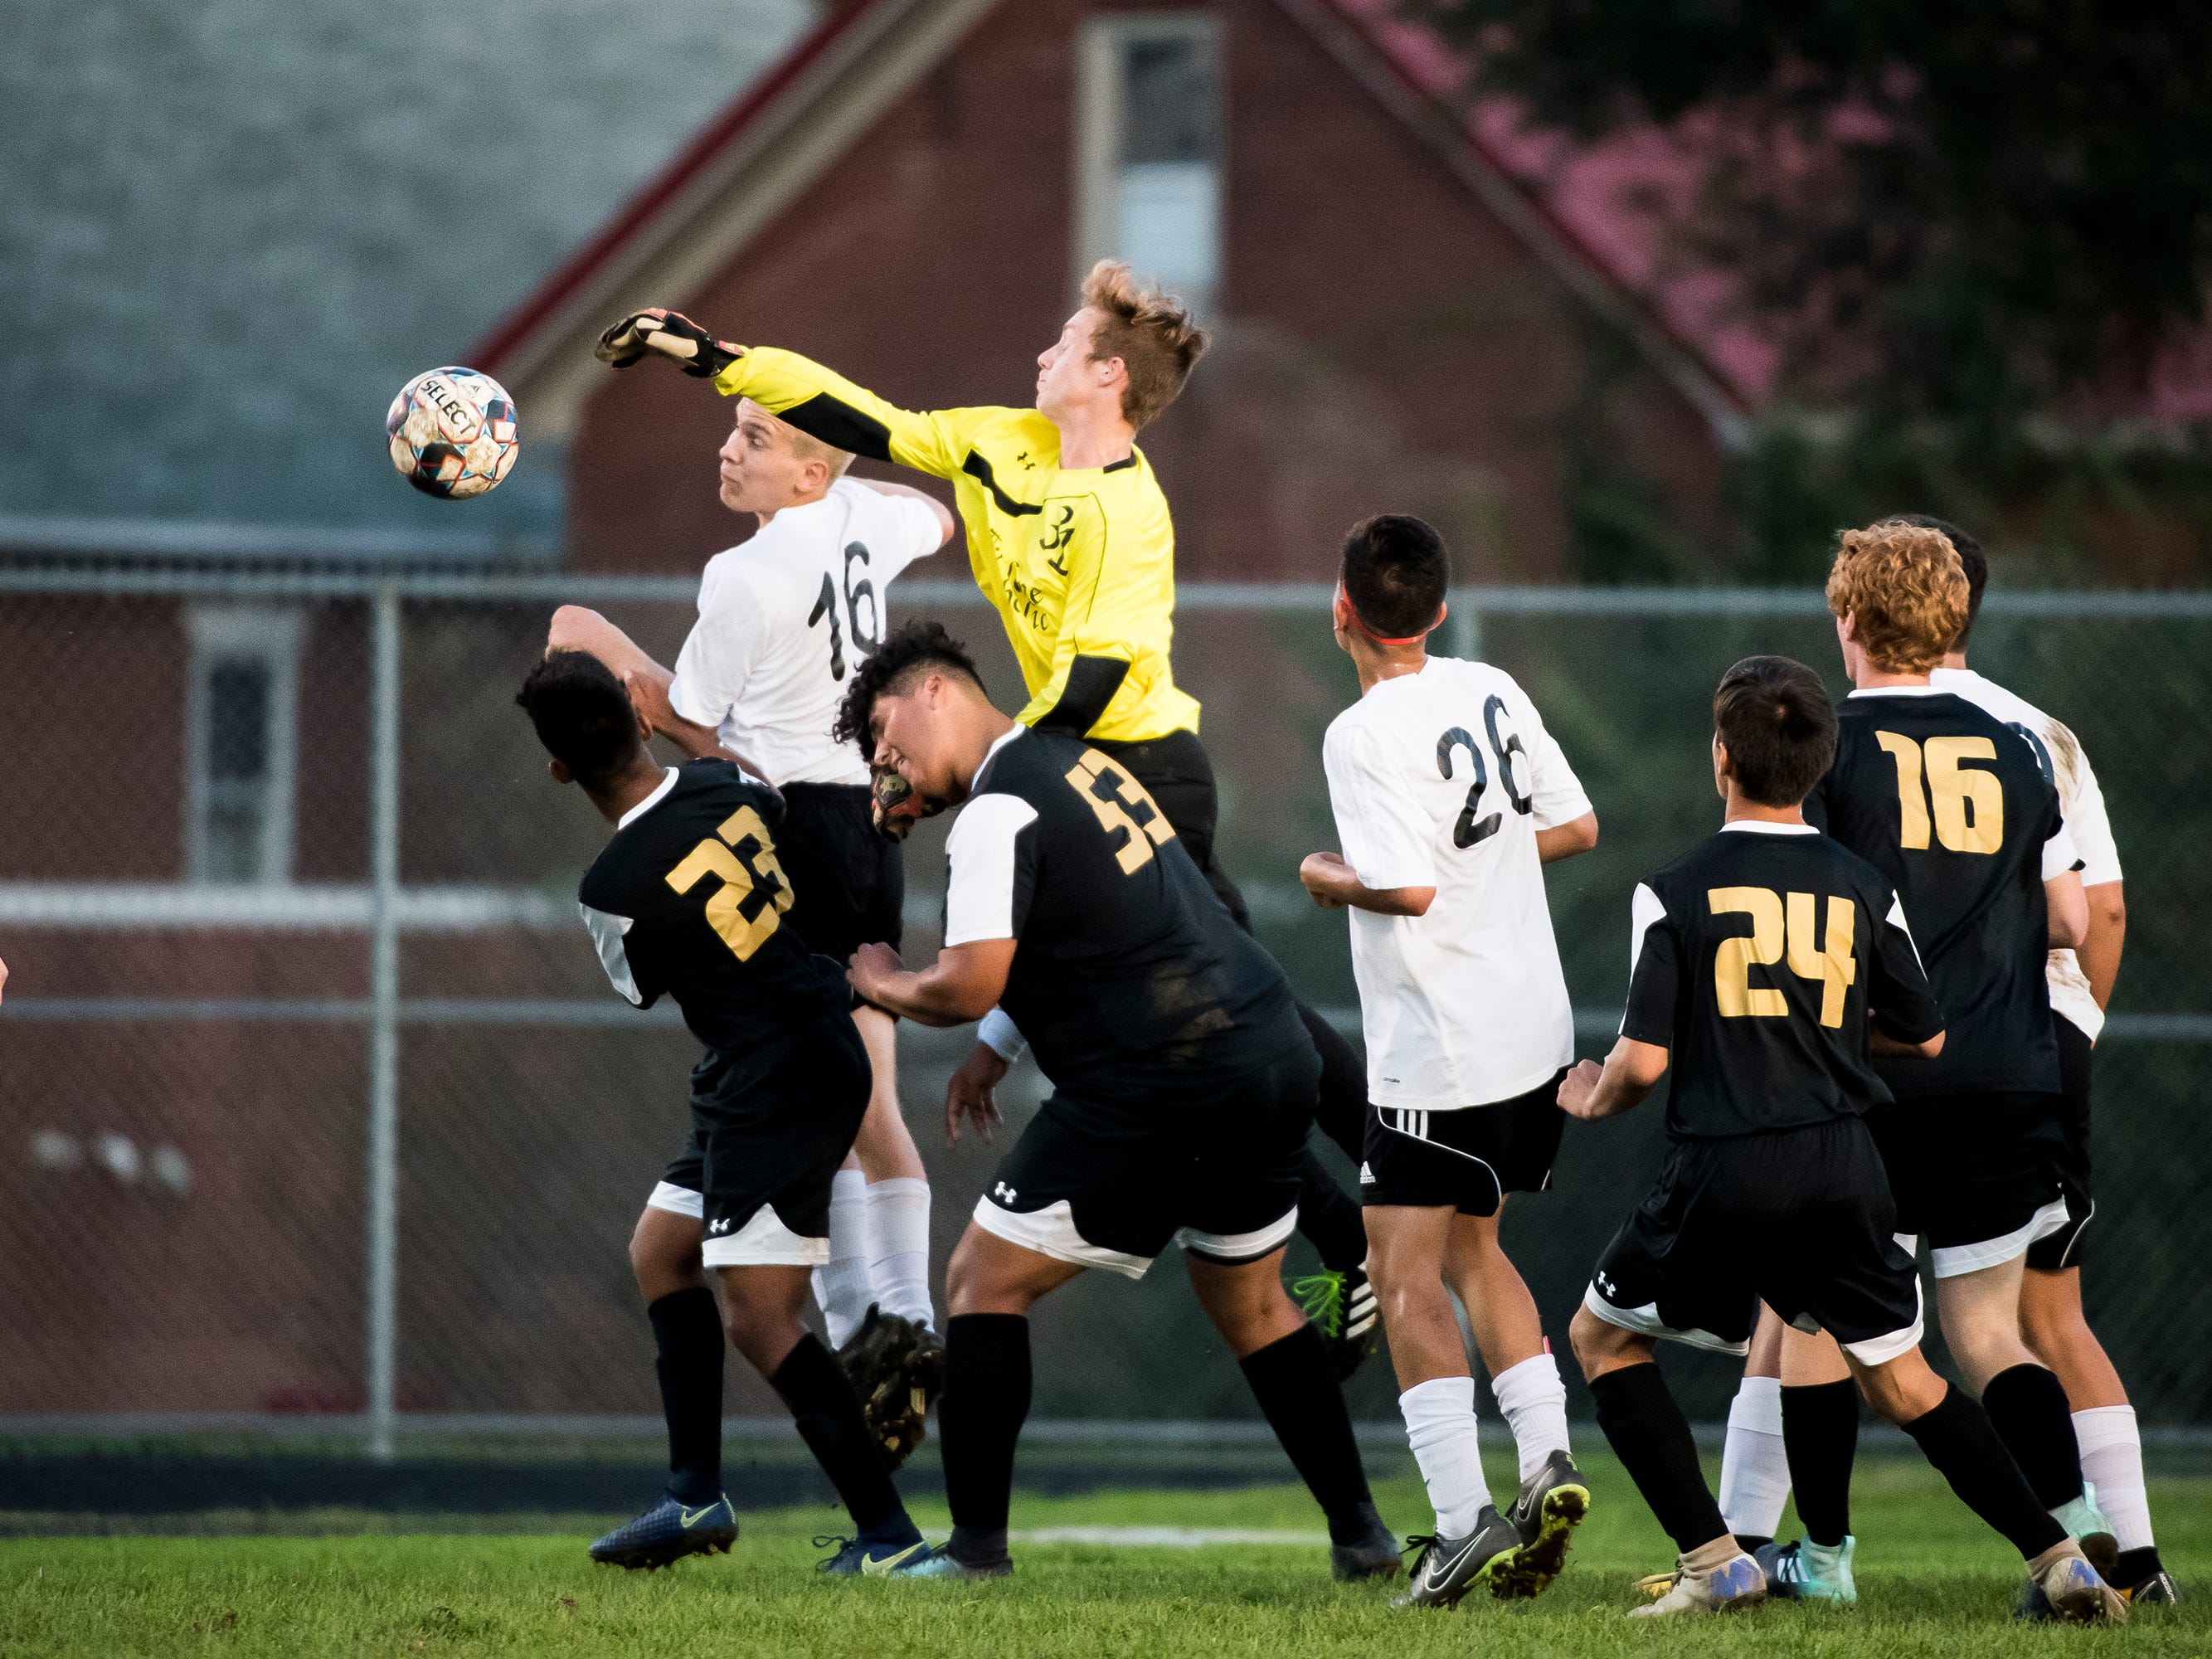 Delone Catholic goalkeeper Jacob Boccabella (yellow) comes out of the net to knock away a shot from Biglerville on Wednesday, October 3, 2018. The Canners won 3-0.